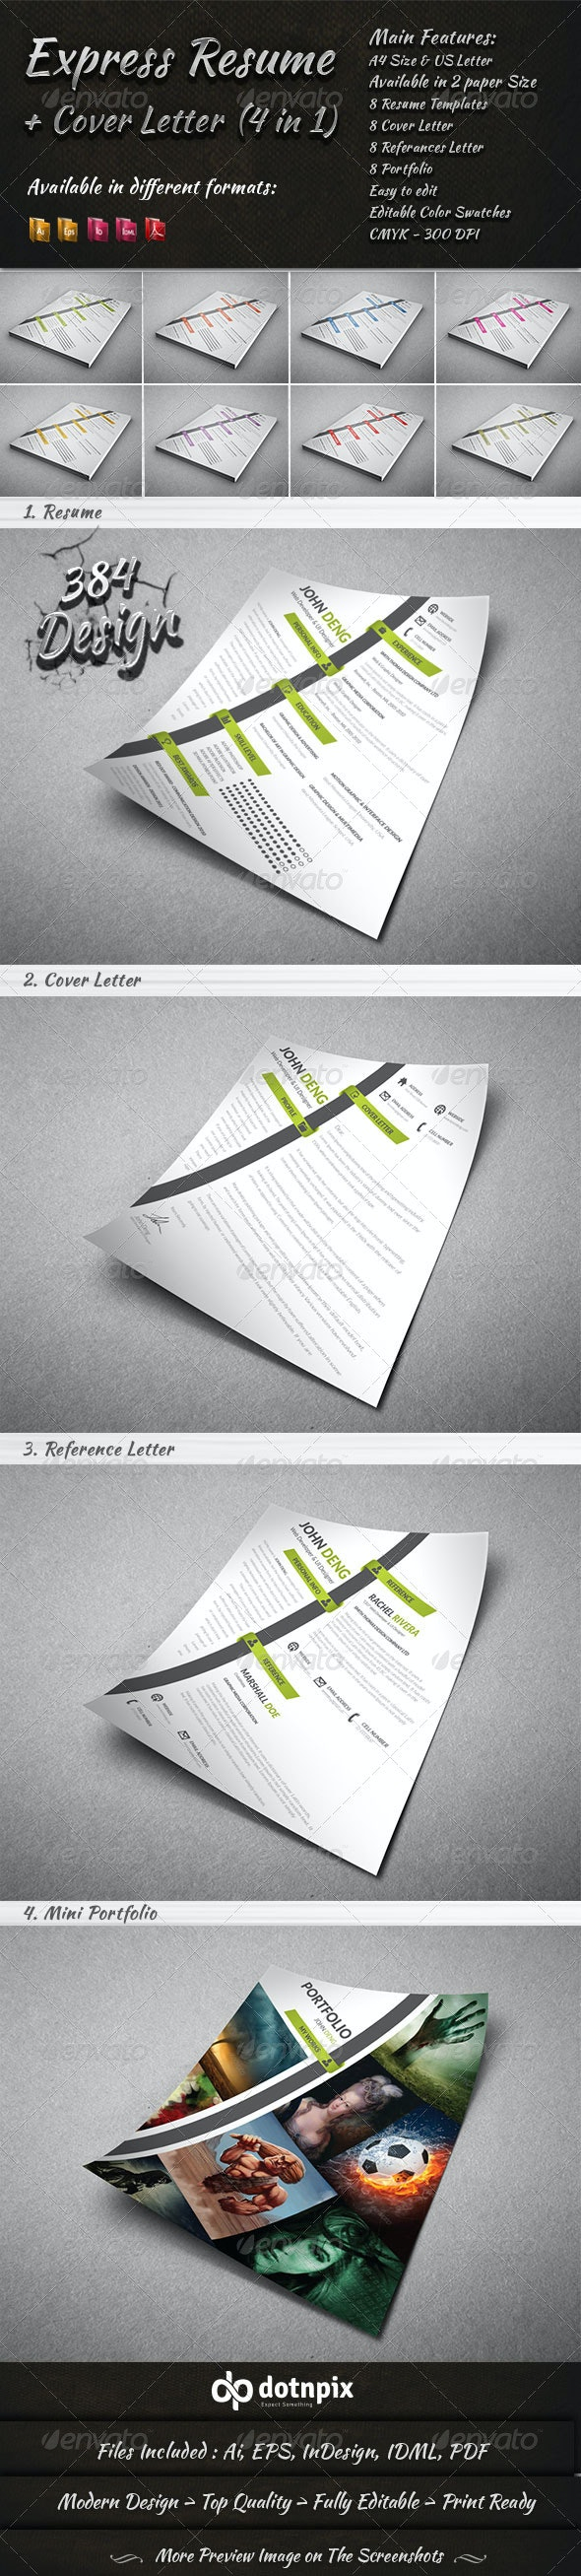 Express Resume - Cover Letter (4 in 1) - Resumes Stationery